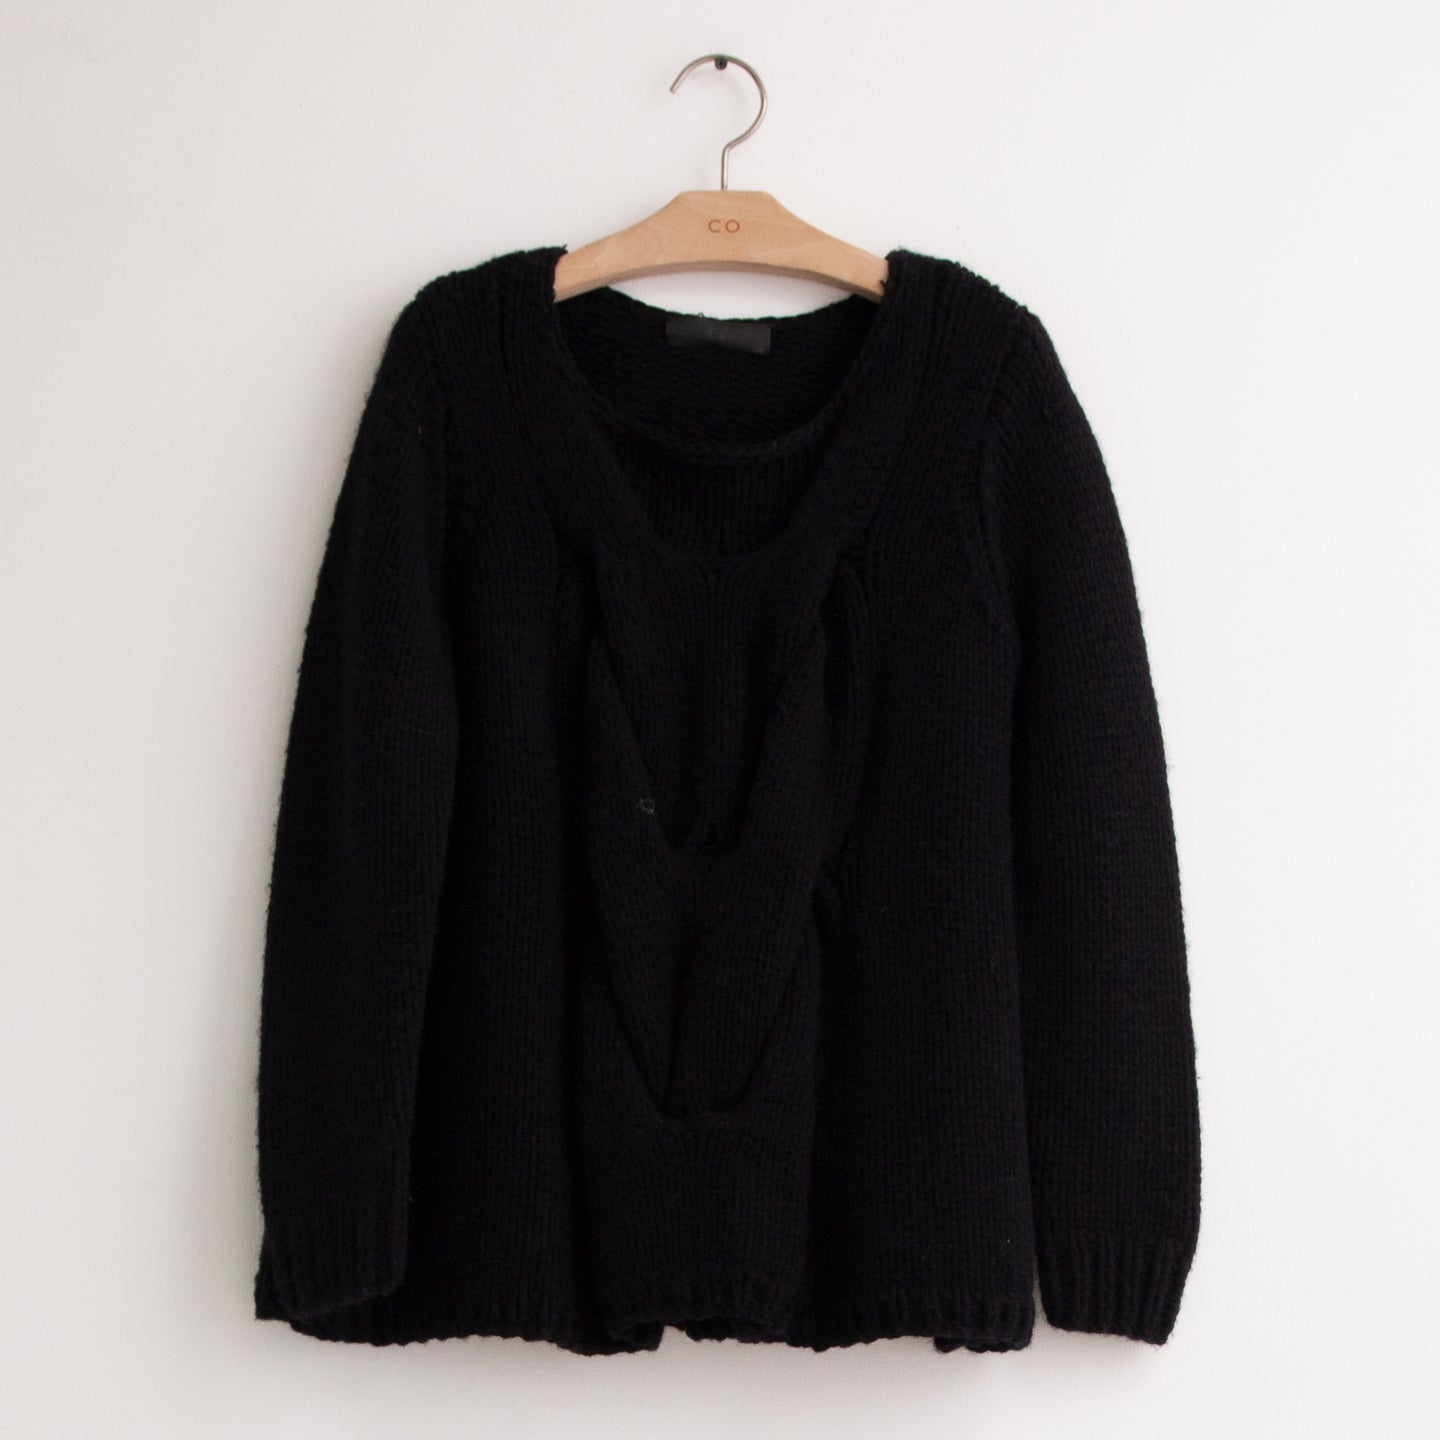 CO - Round neck sweater with exaggerated front cable knit detail in black wool silk